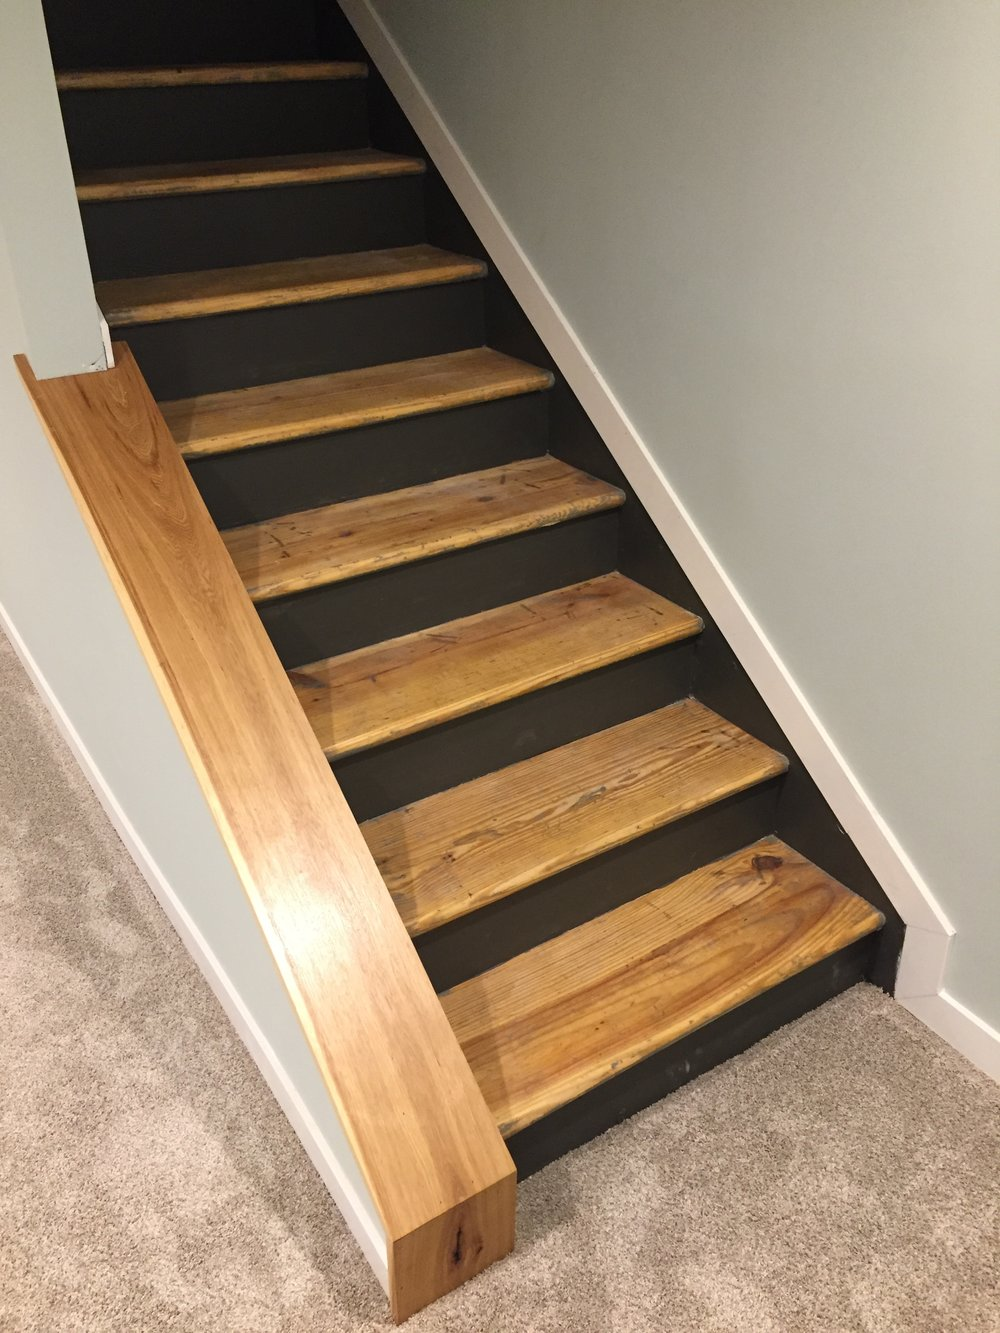 Basement Stairs Ideas: DIY Basement Stair Transformation